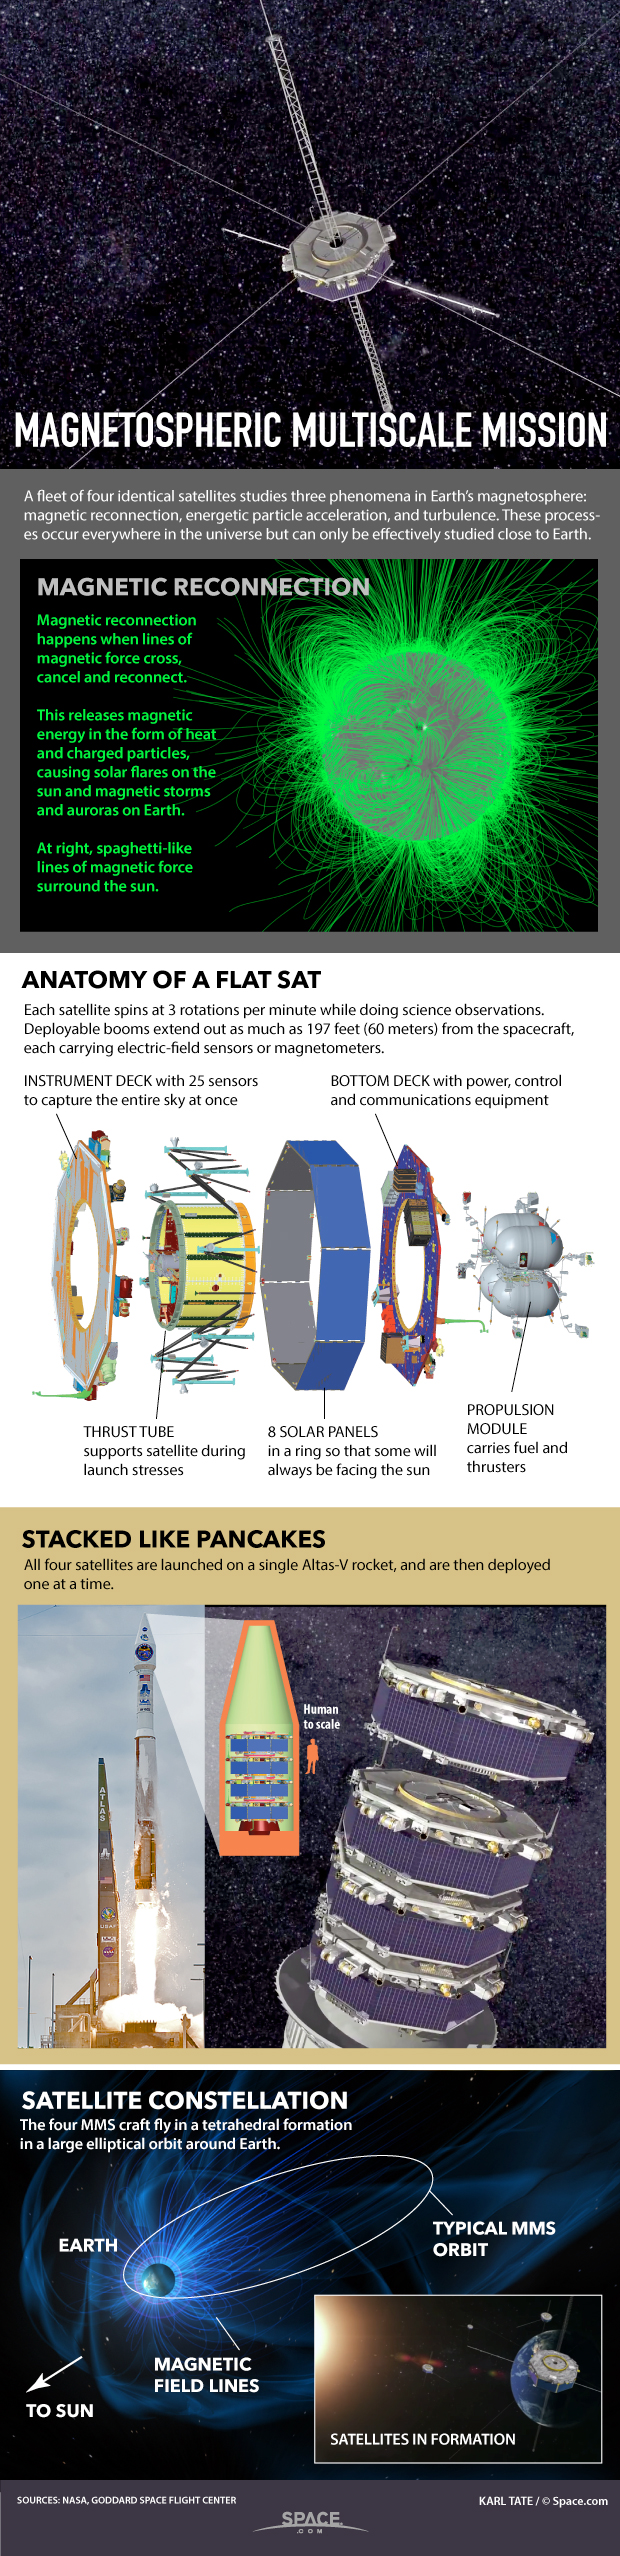 How 4 NASA Satellites Will Study Magnetic Fields of Earth & Sun (Infographic)